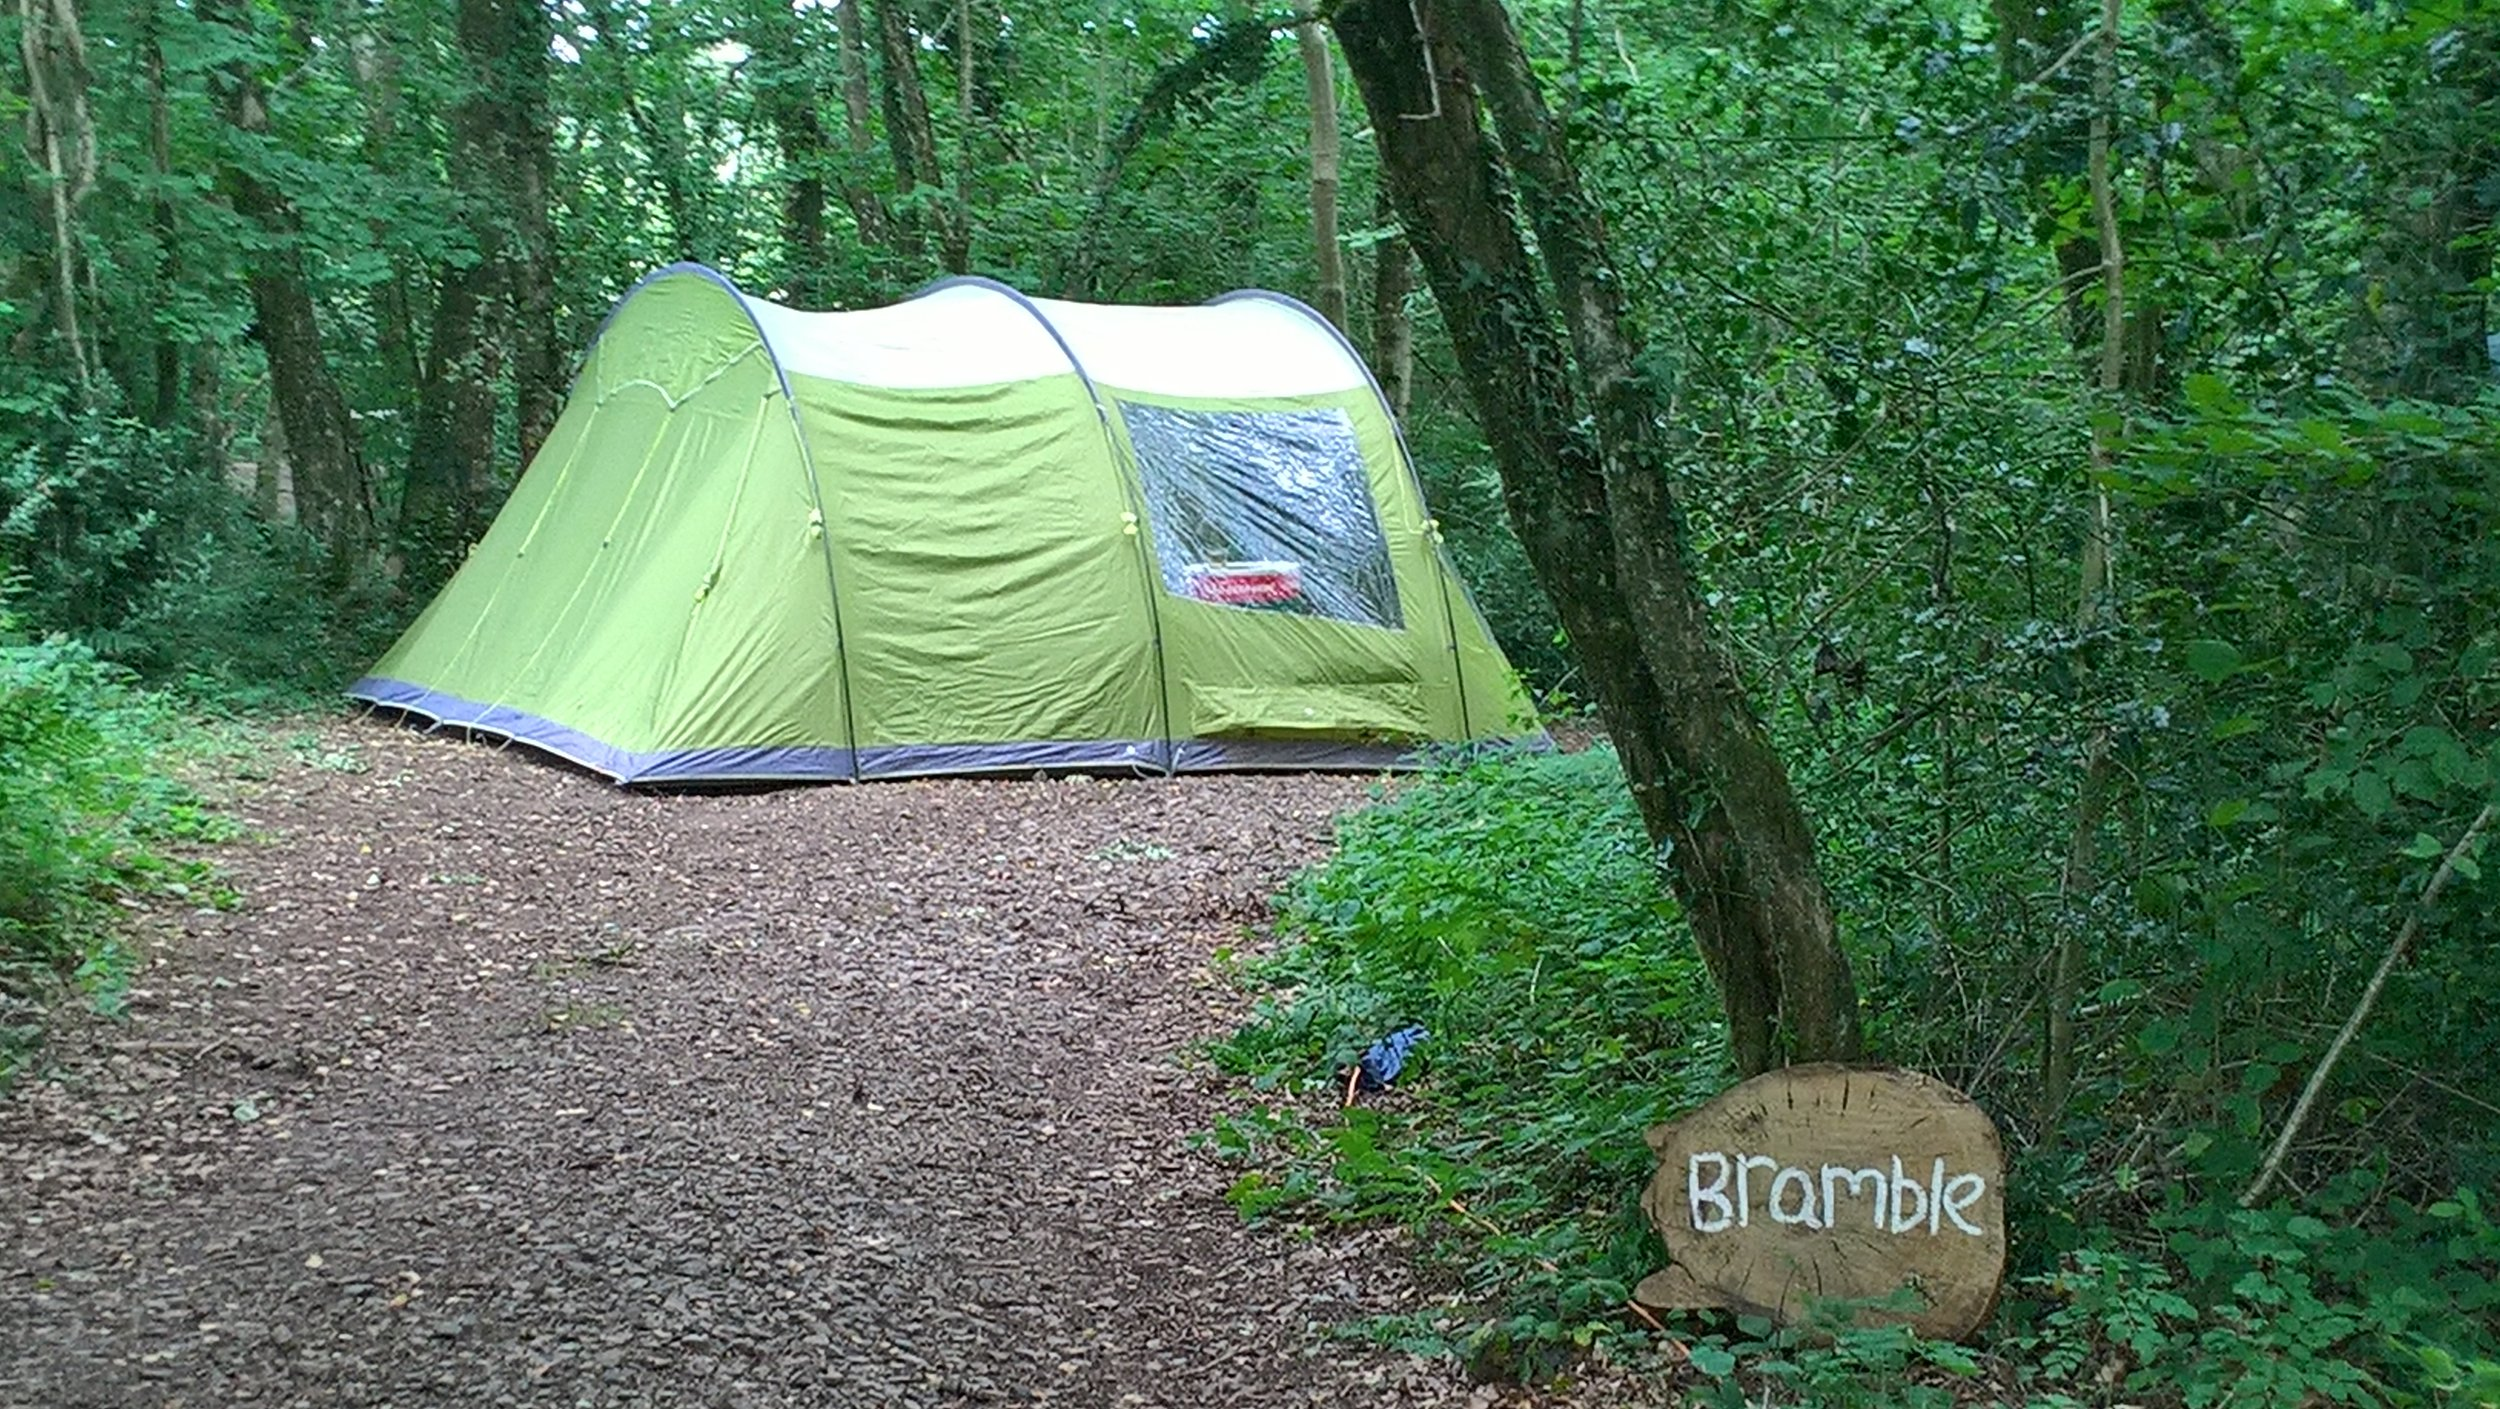 FROM £35 PER NIGHT - electric included. maximum tent size of 5m